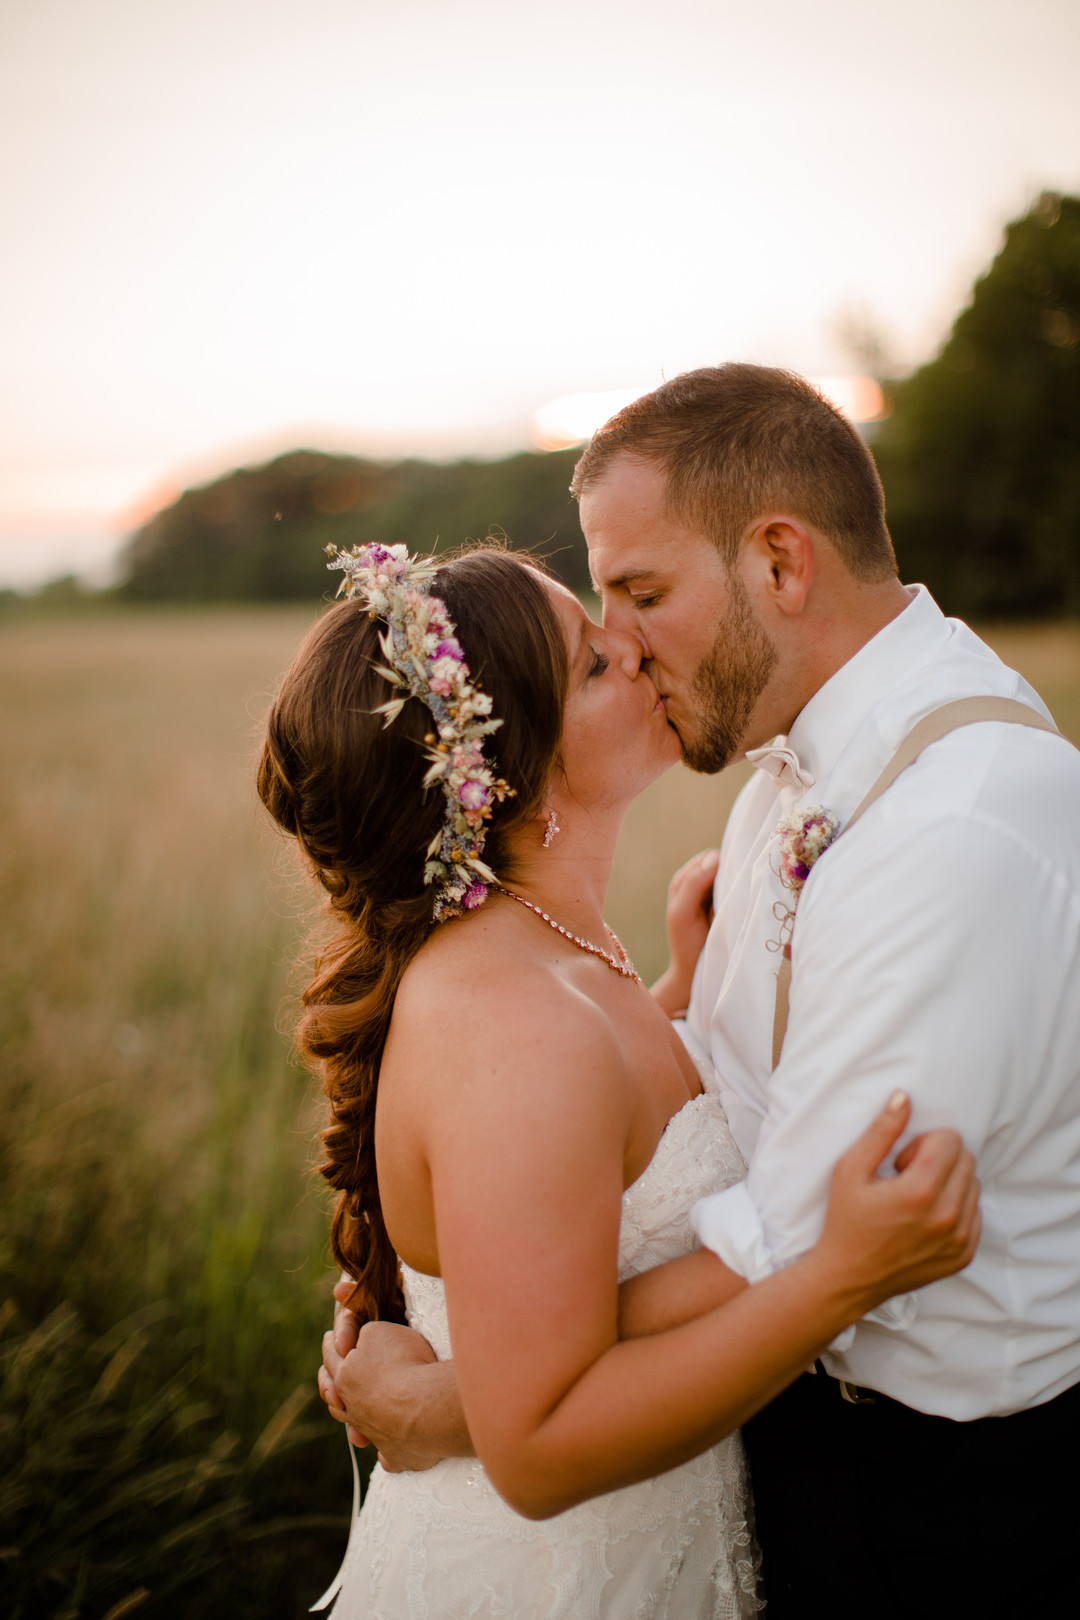 Golden hour wedding photos: Rustic country wedding in Minooka, IL captured by Katie Brsan Photography. Visit CHItheeWED.com for more wedding inspiration!